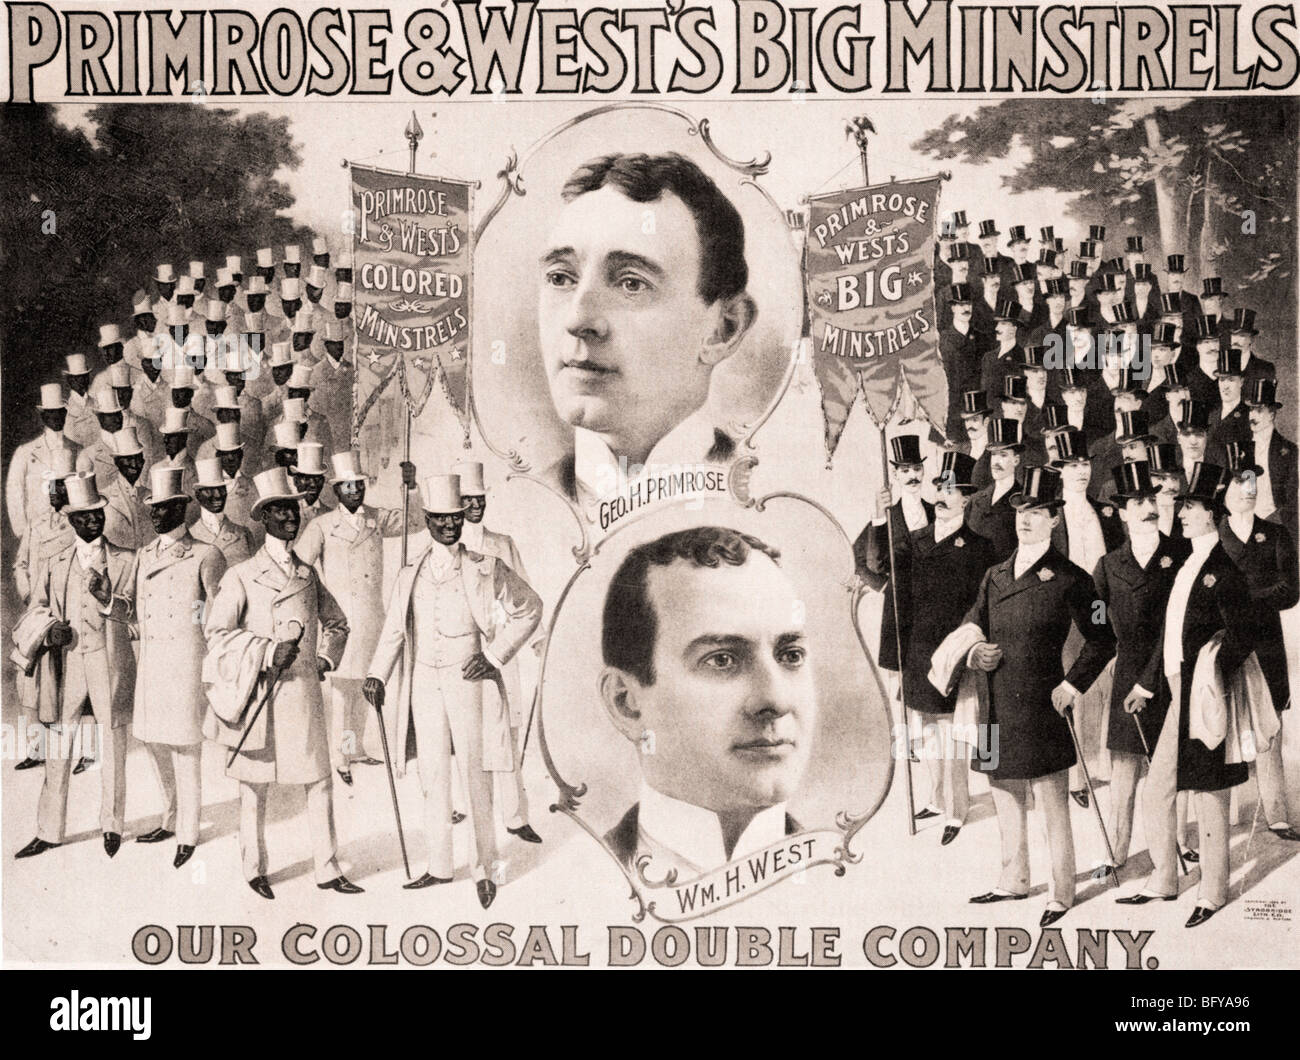 GEORGE PRIMROSE & William West - American Black-face de la canción y el baile dúo que formaron varias Imagen De Stock